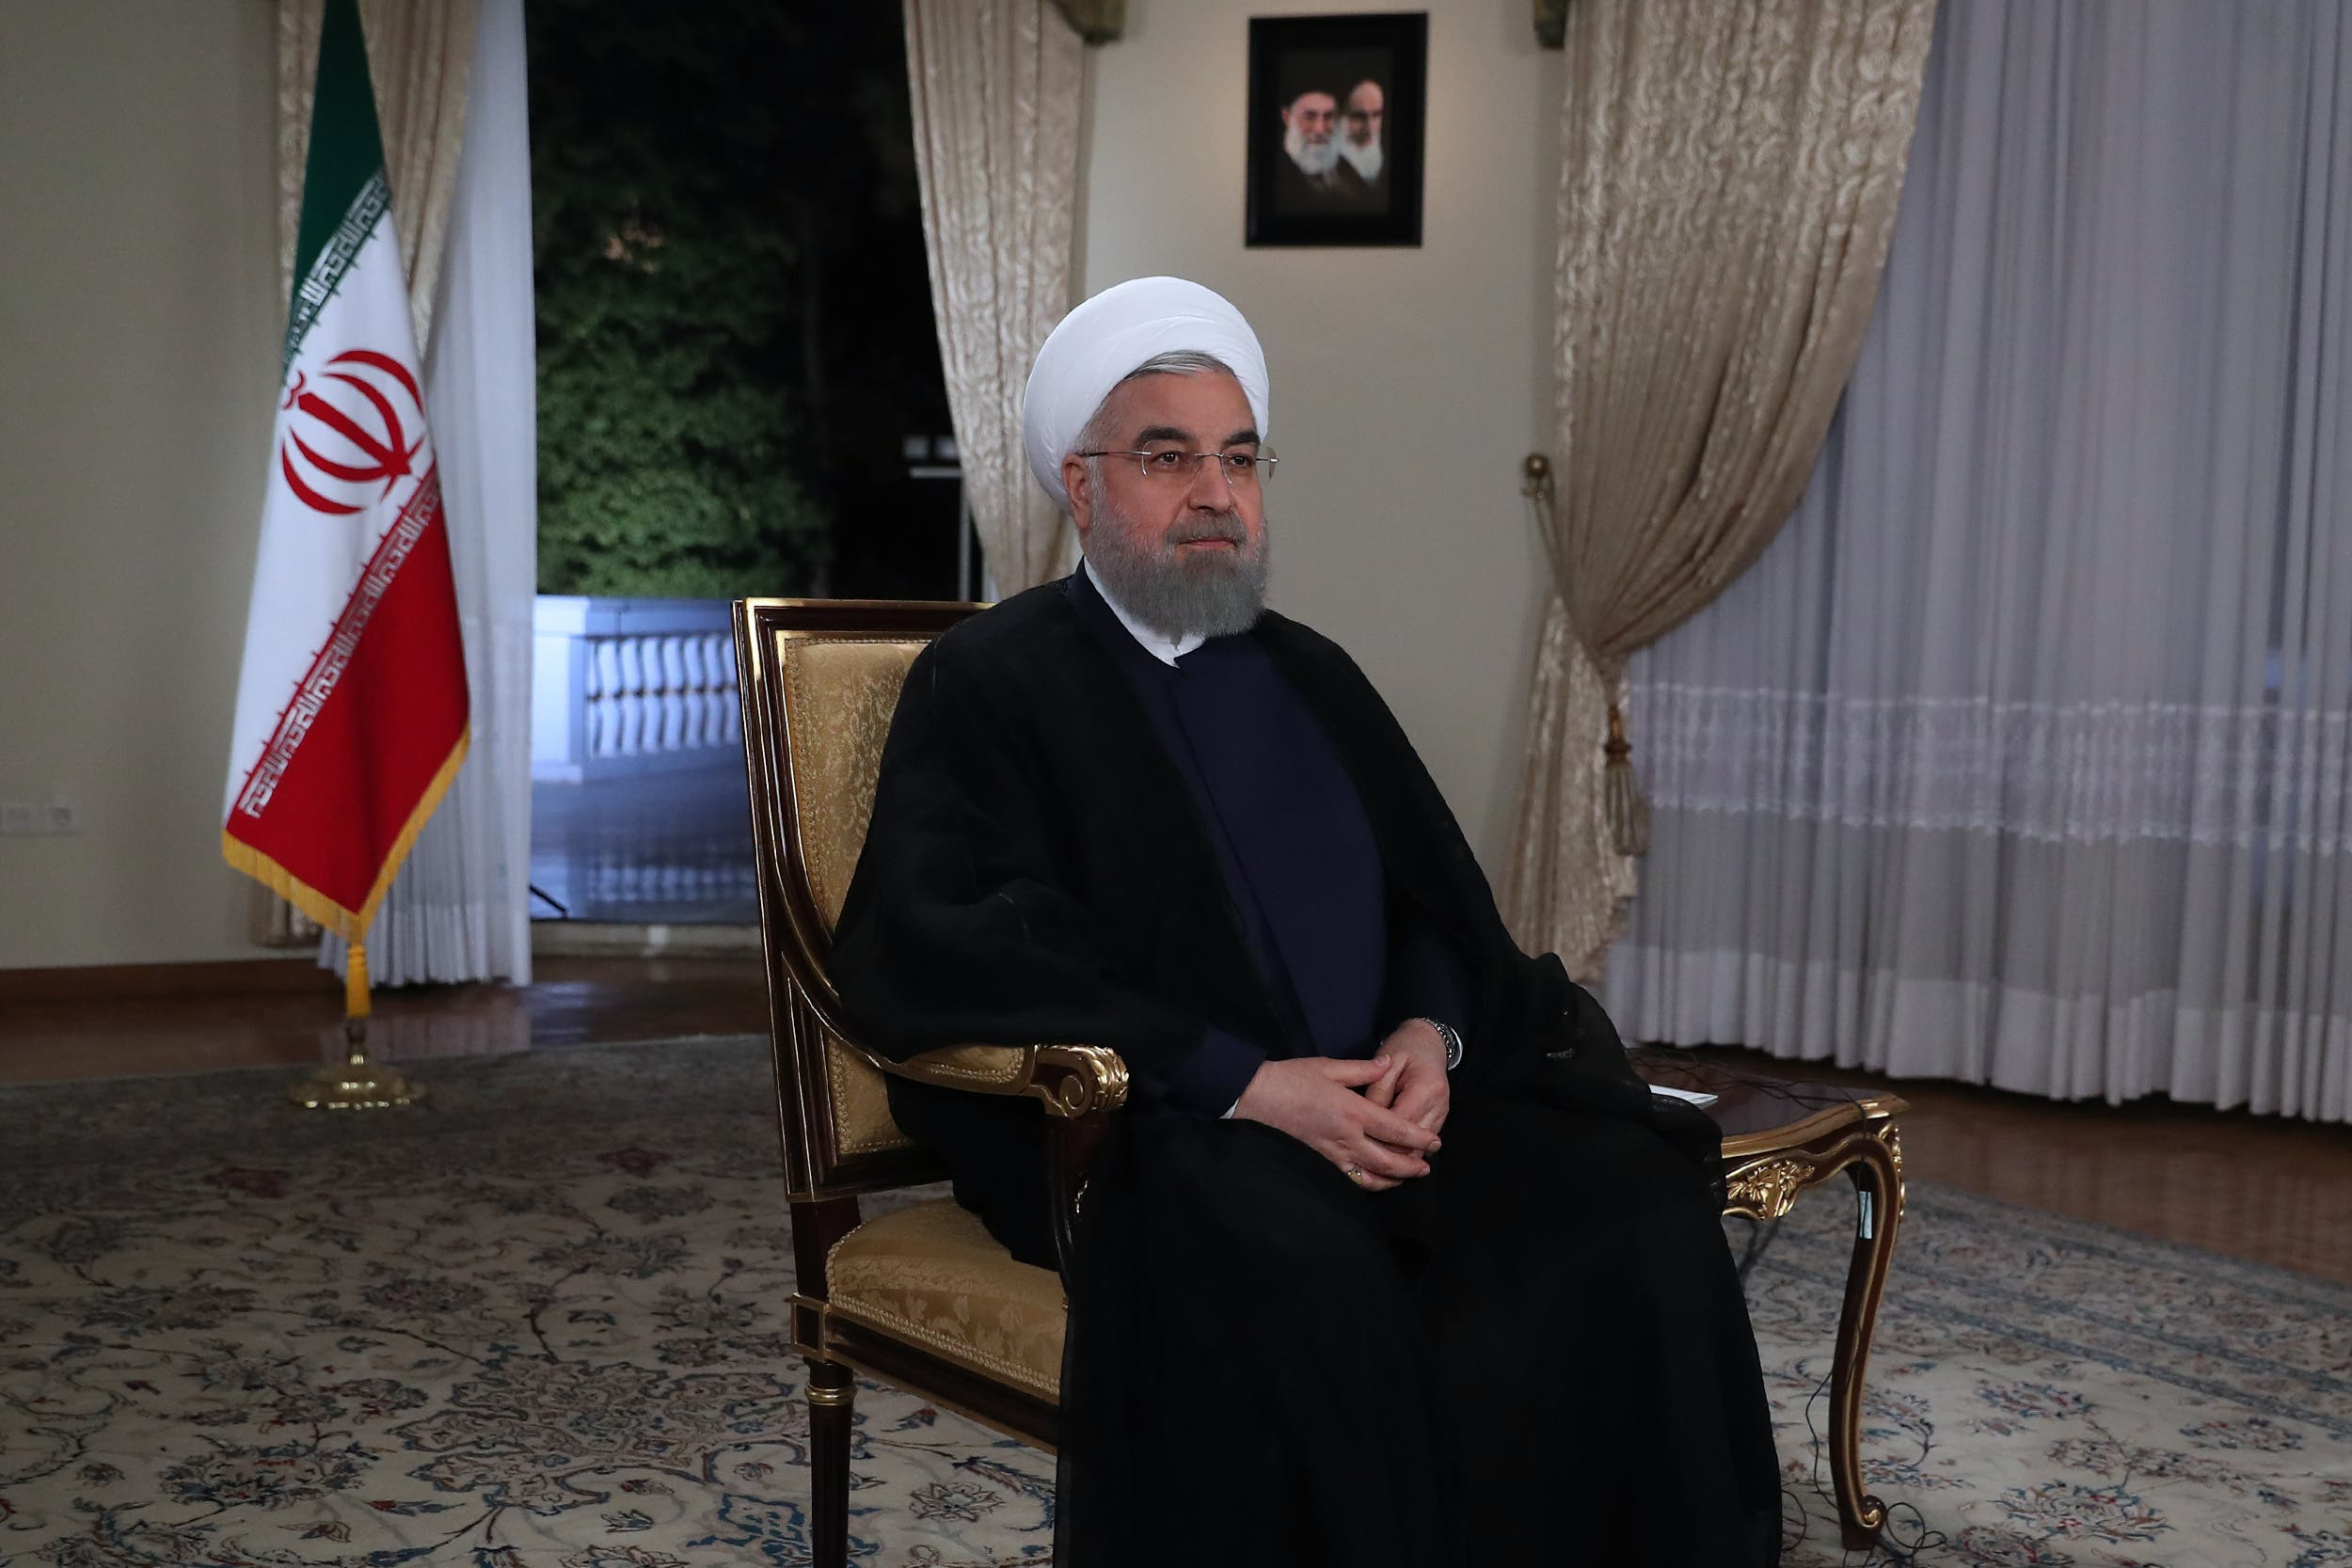 A handout picture provided by the office of Iranian President Hassan Rouhani on August 29, 2017, shows him during a live TV broadcast interview in Tehran. (AFP)